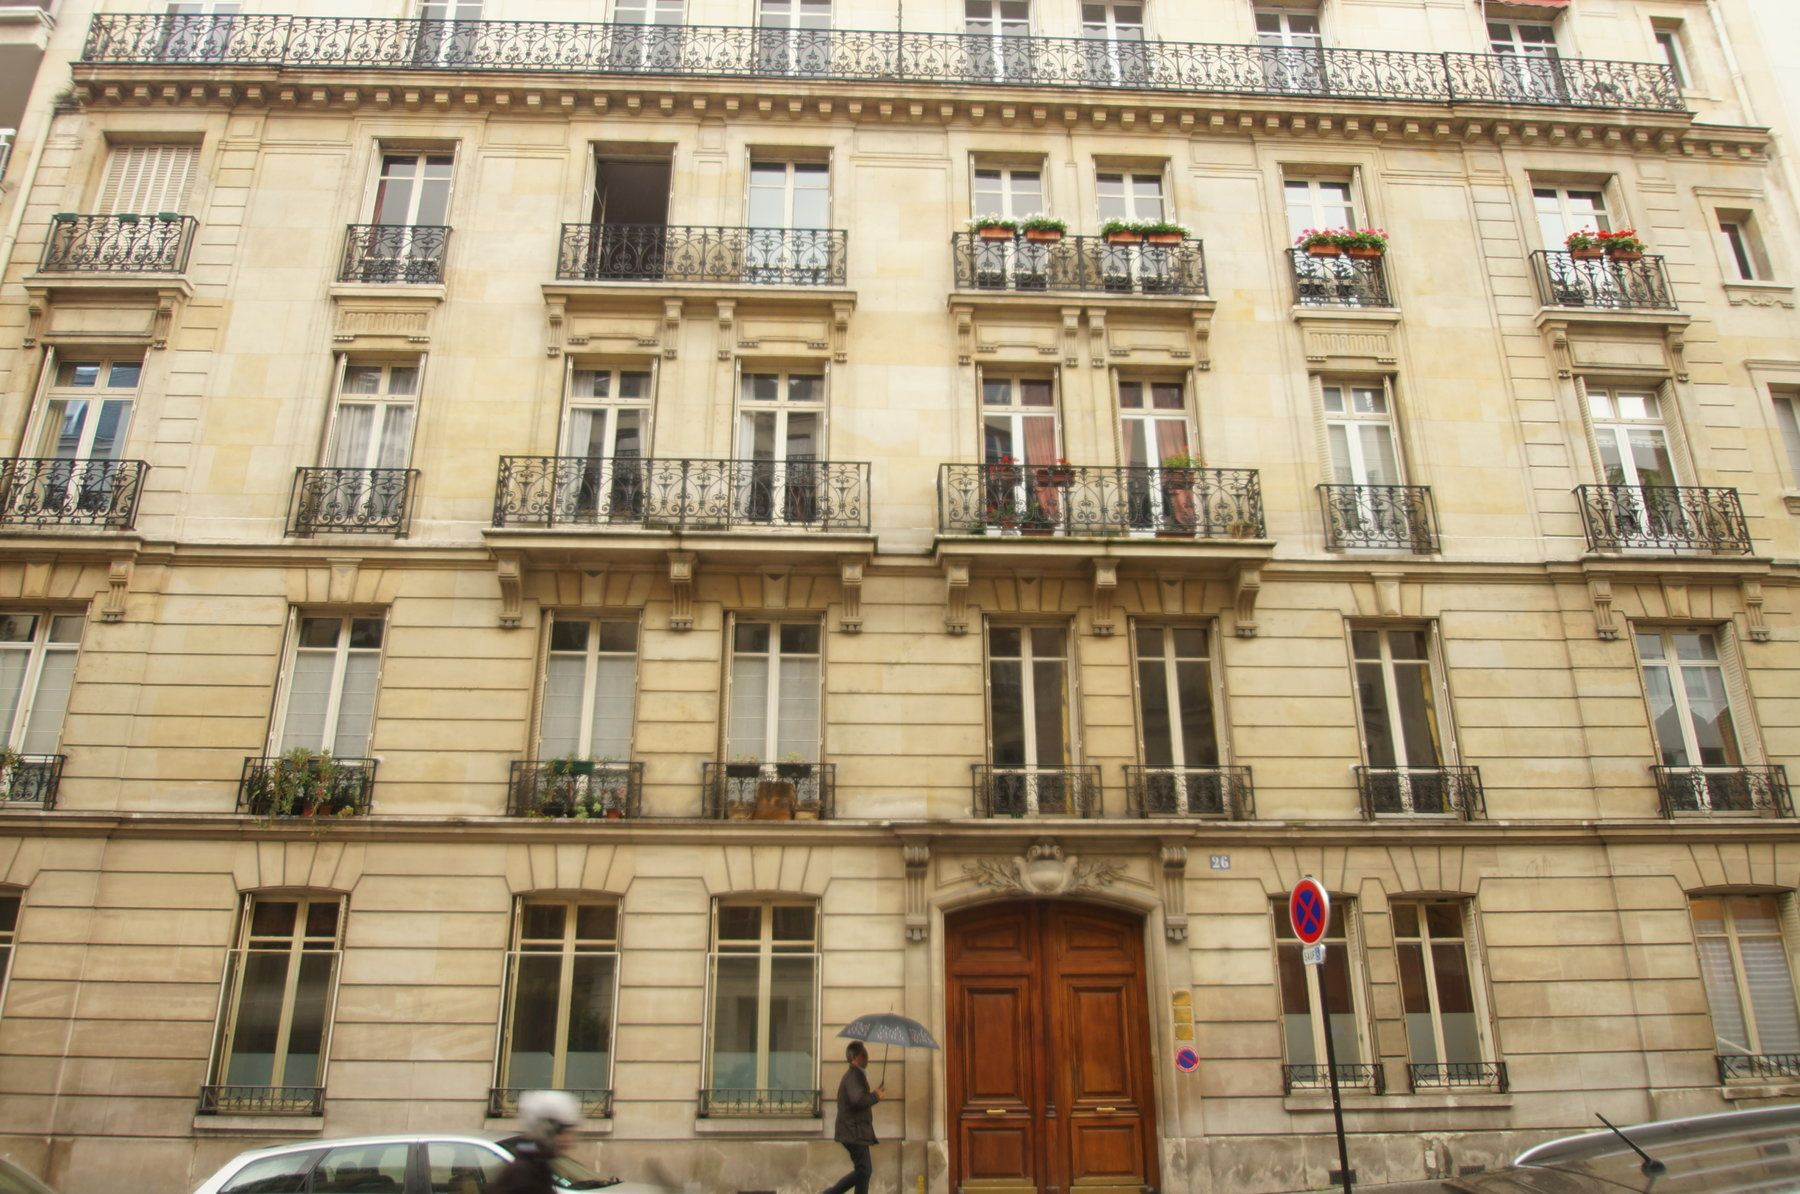 26 rue brunel 75017 paris estimation immobili re orpi for 5 rue belidor 75017 paris